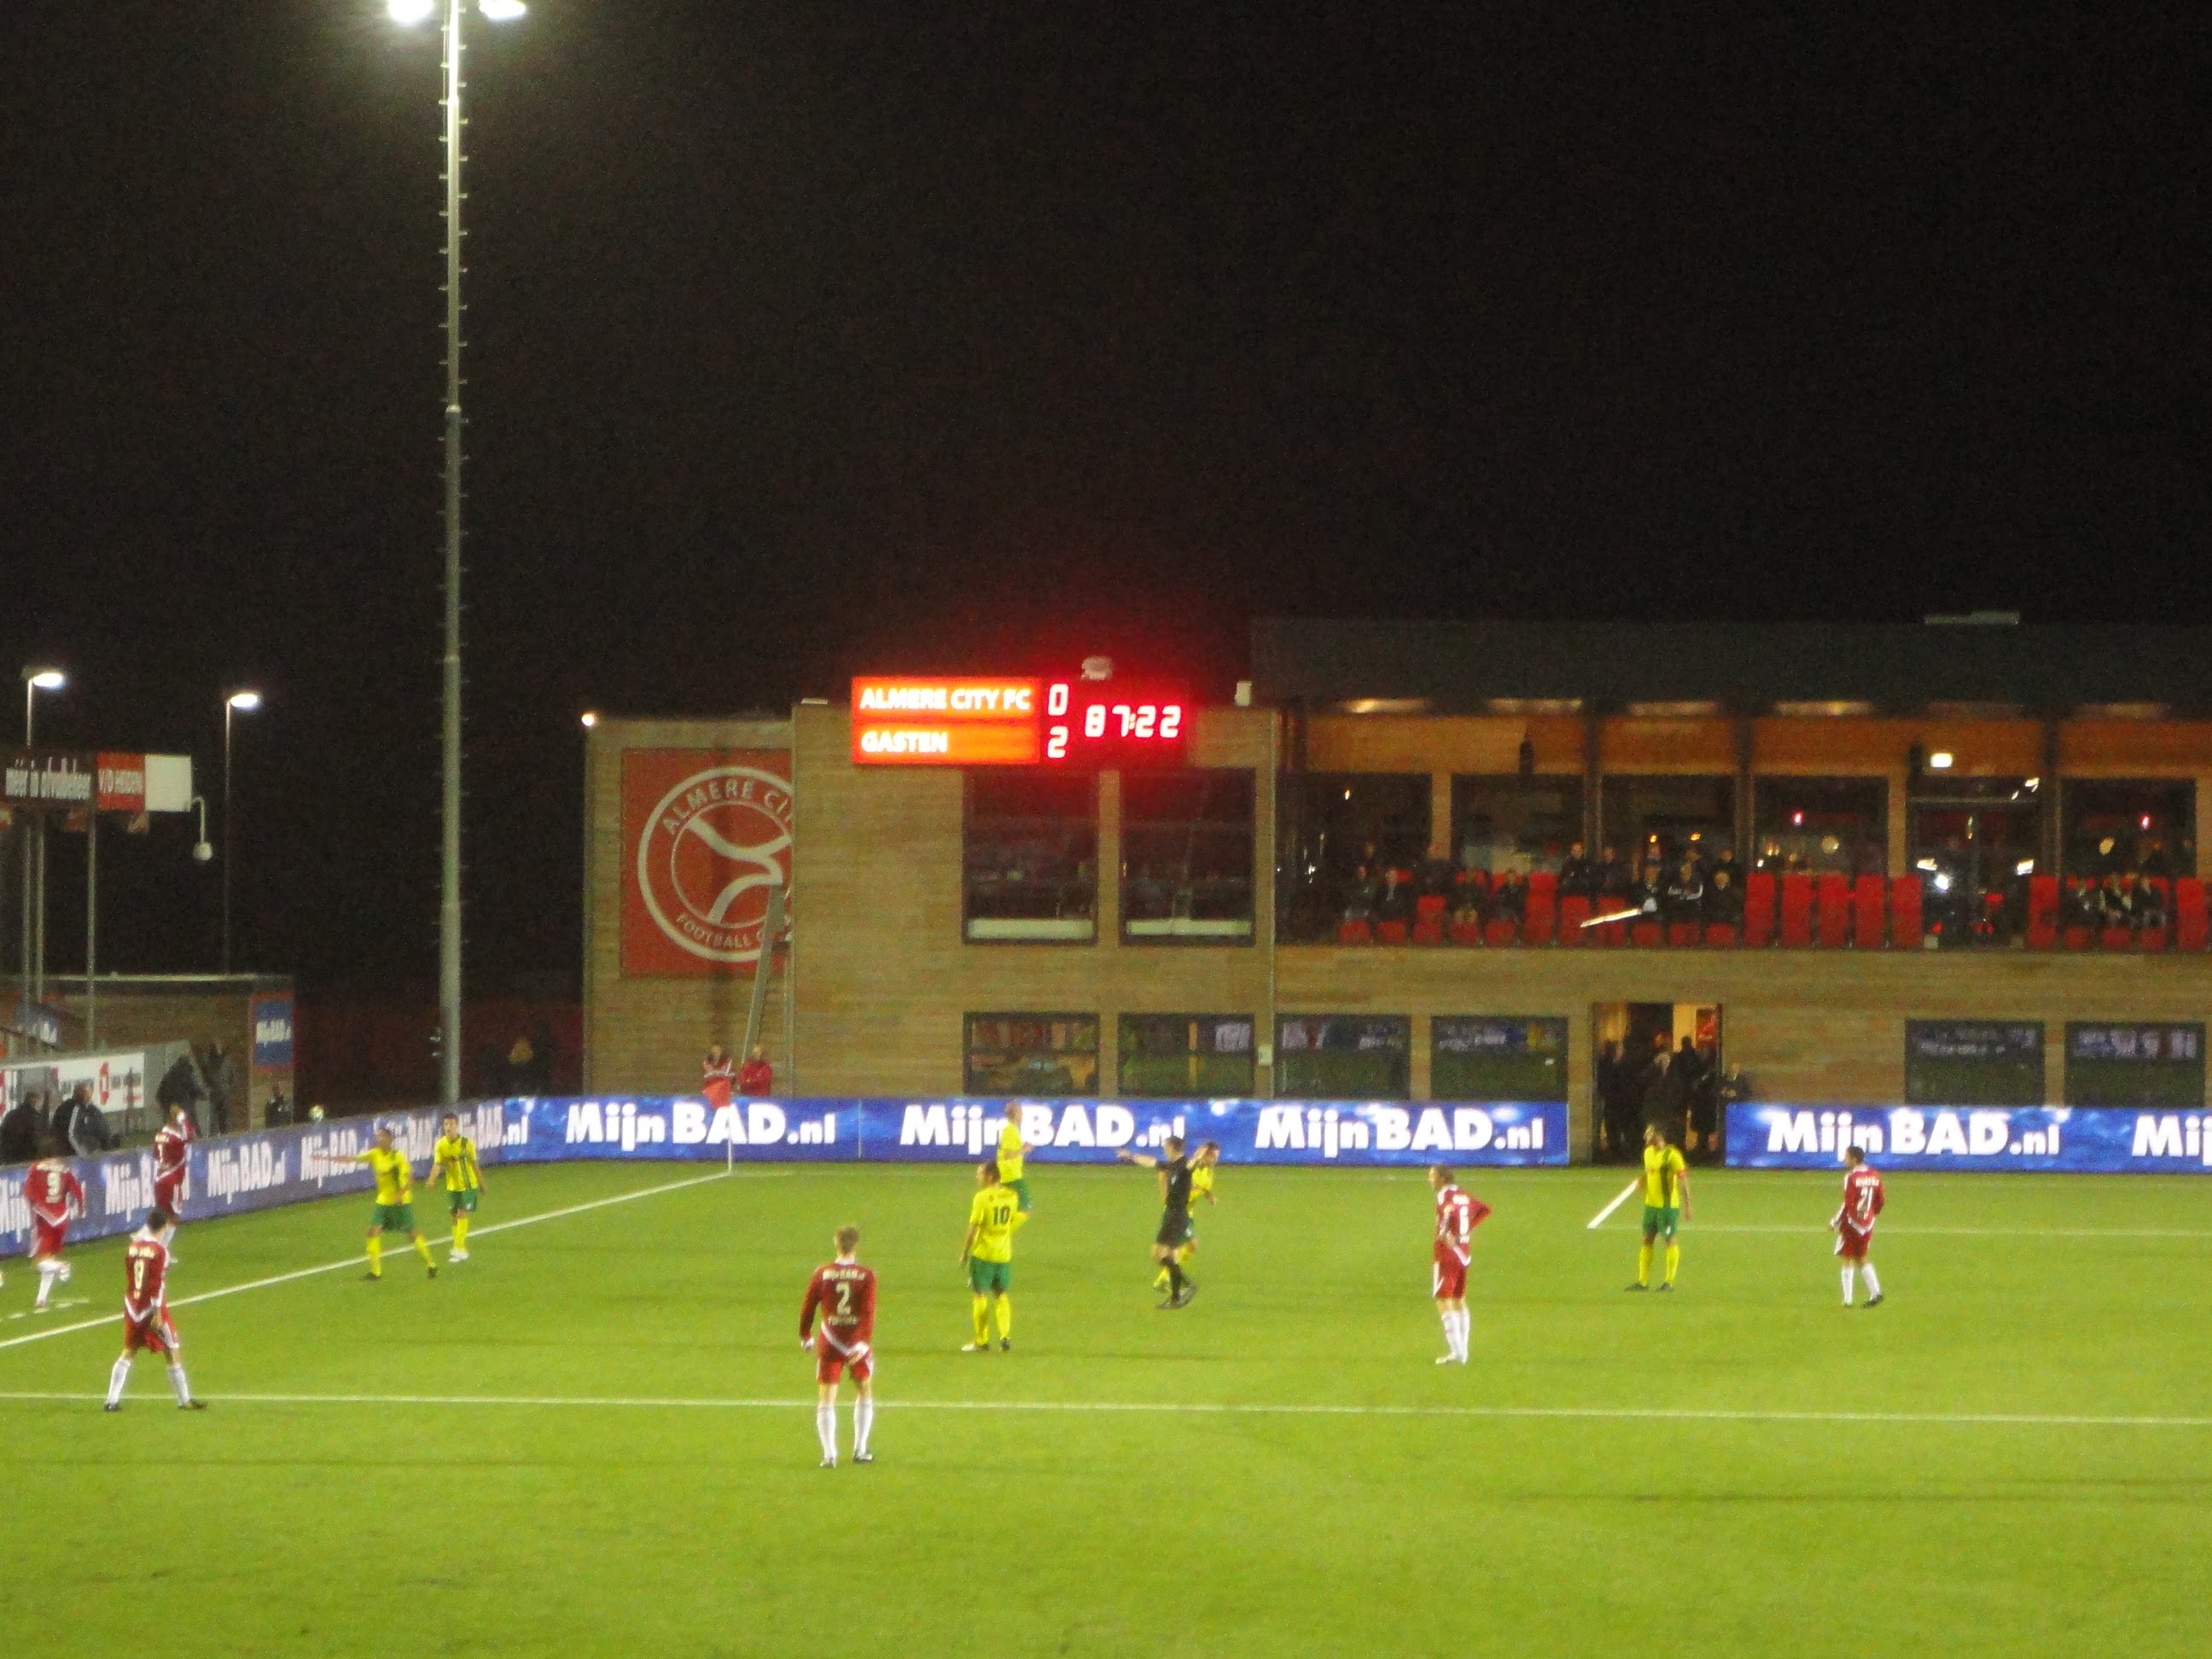 Almere City 0 Fortuna Sittard 2